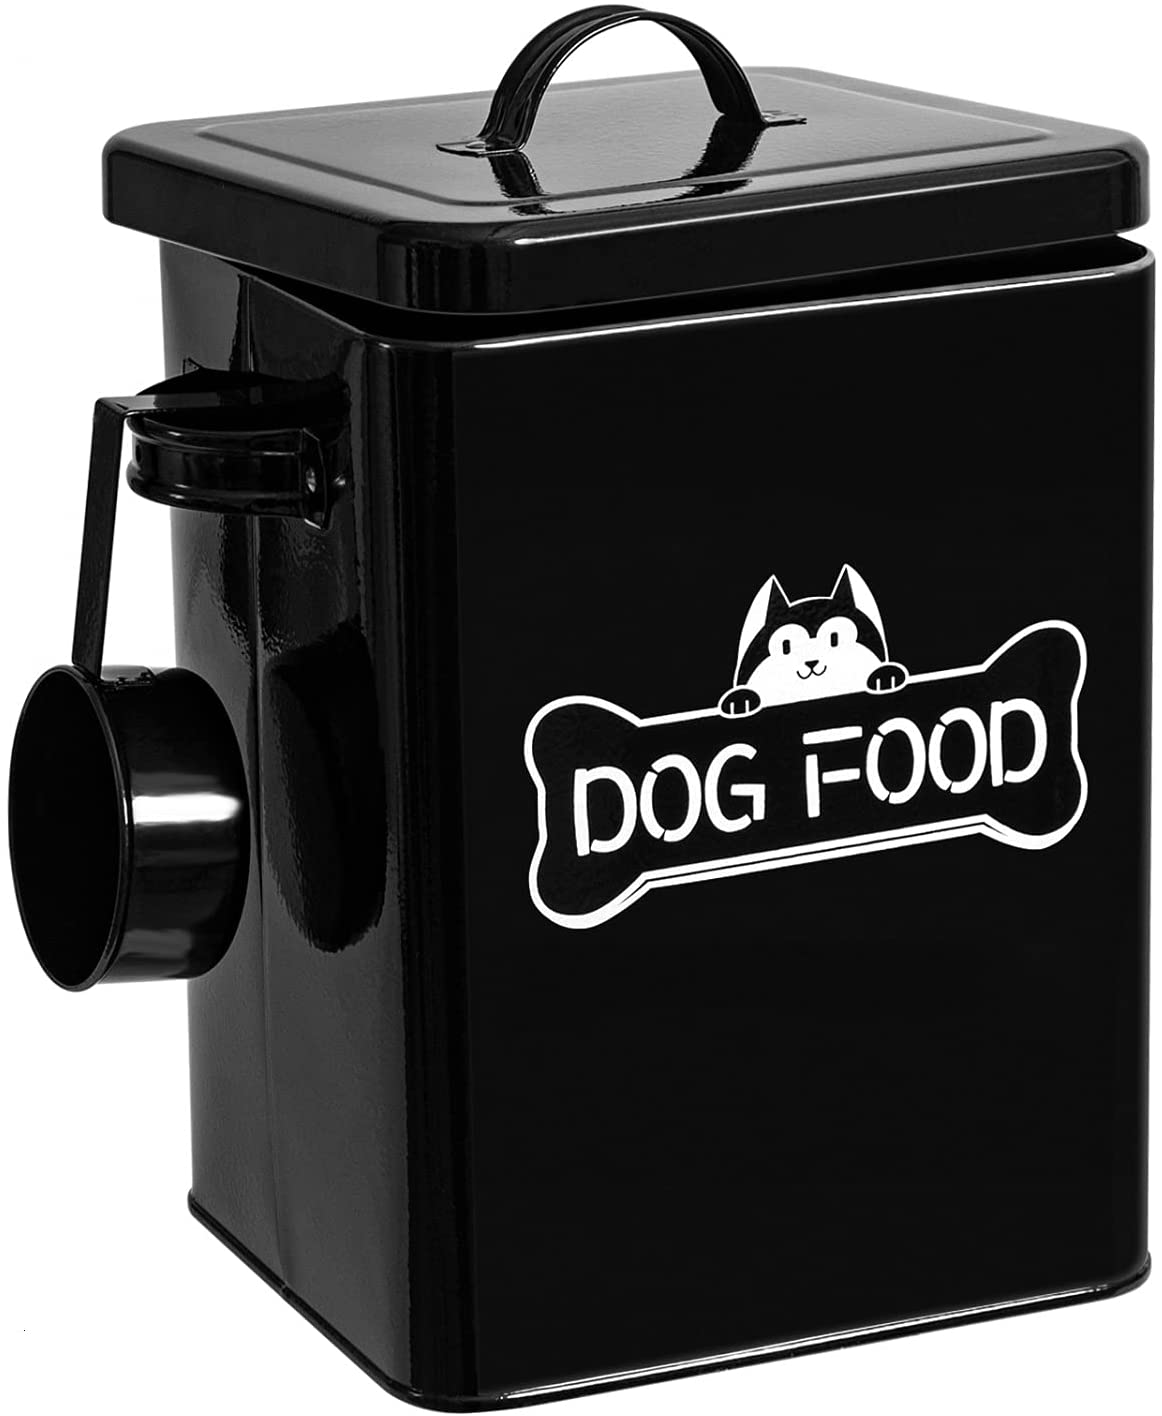 Vumdua Cat and Dog Food Storage Container with Serving Scoop - Airtight Pet Food Storage with Lid, Farmhouse Dog Treat Container, Great Gift for Dog Owners, Black